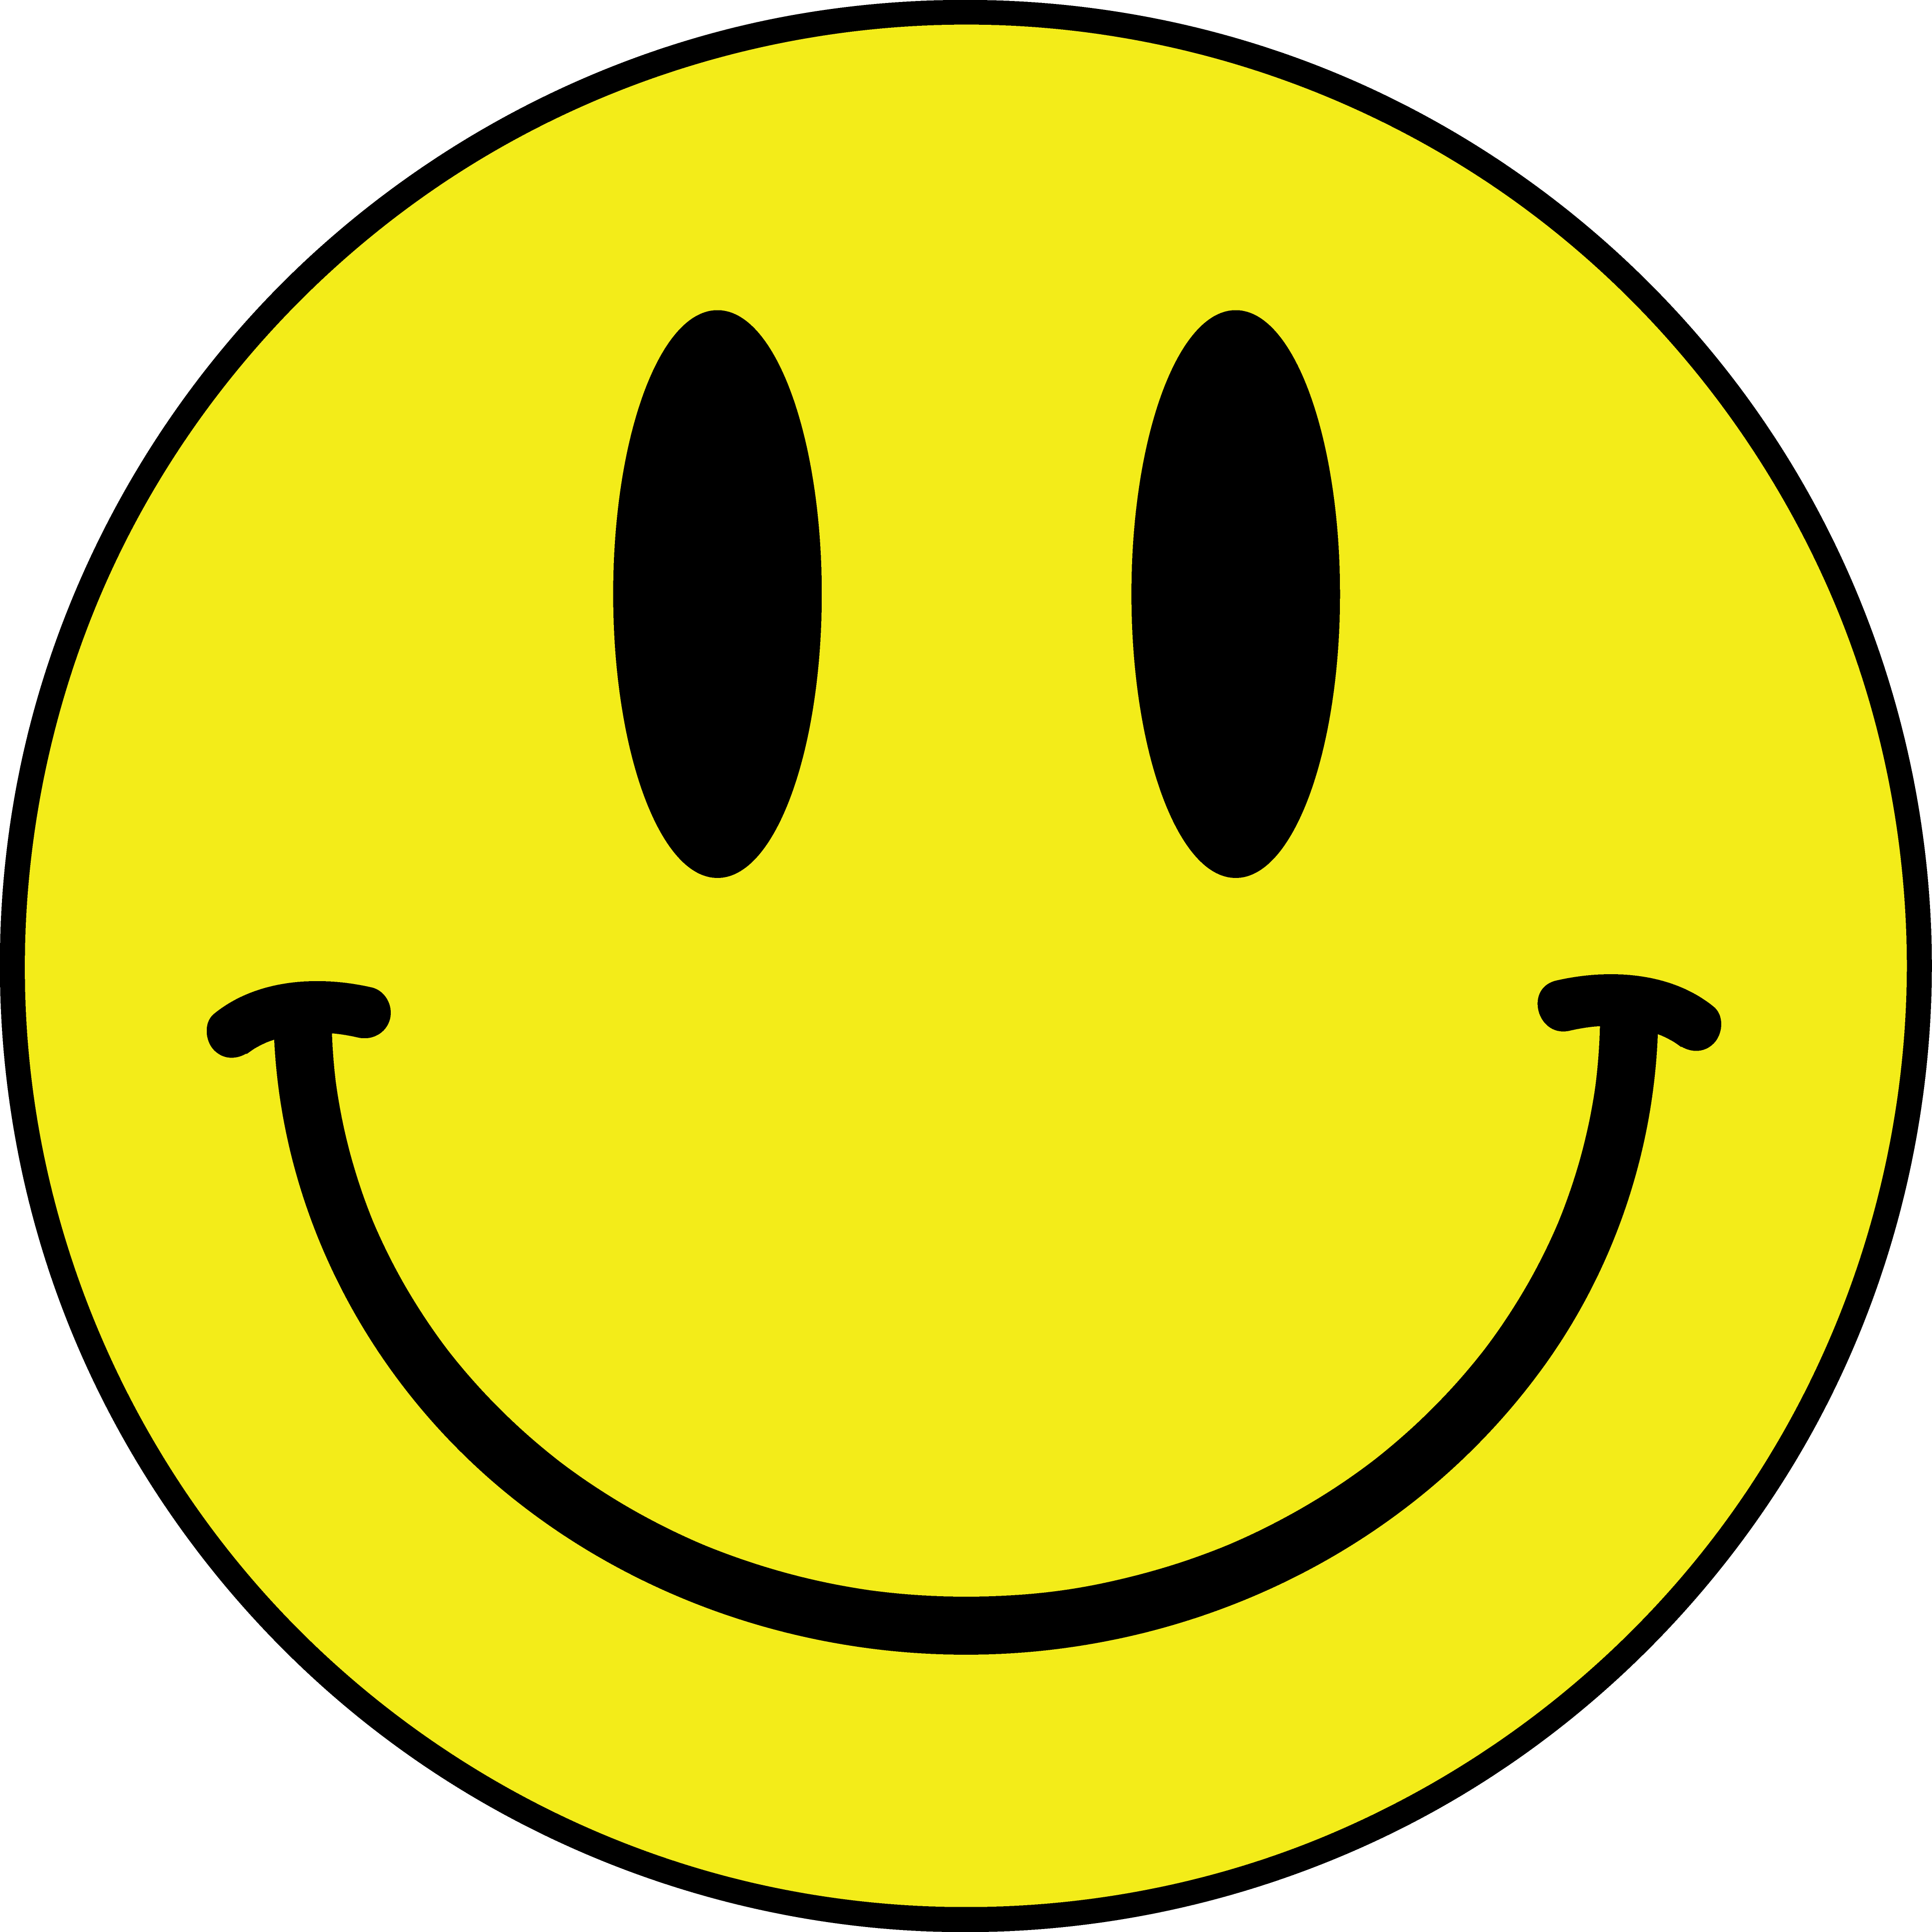 PNG Smiling Face Transparent Smiling Face.PNG Images ... - Smiley-Face Clear Background